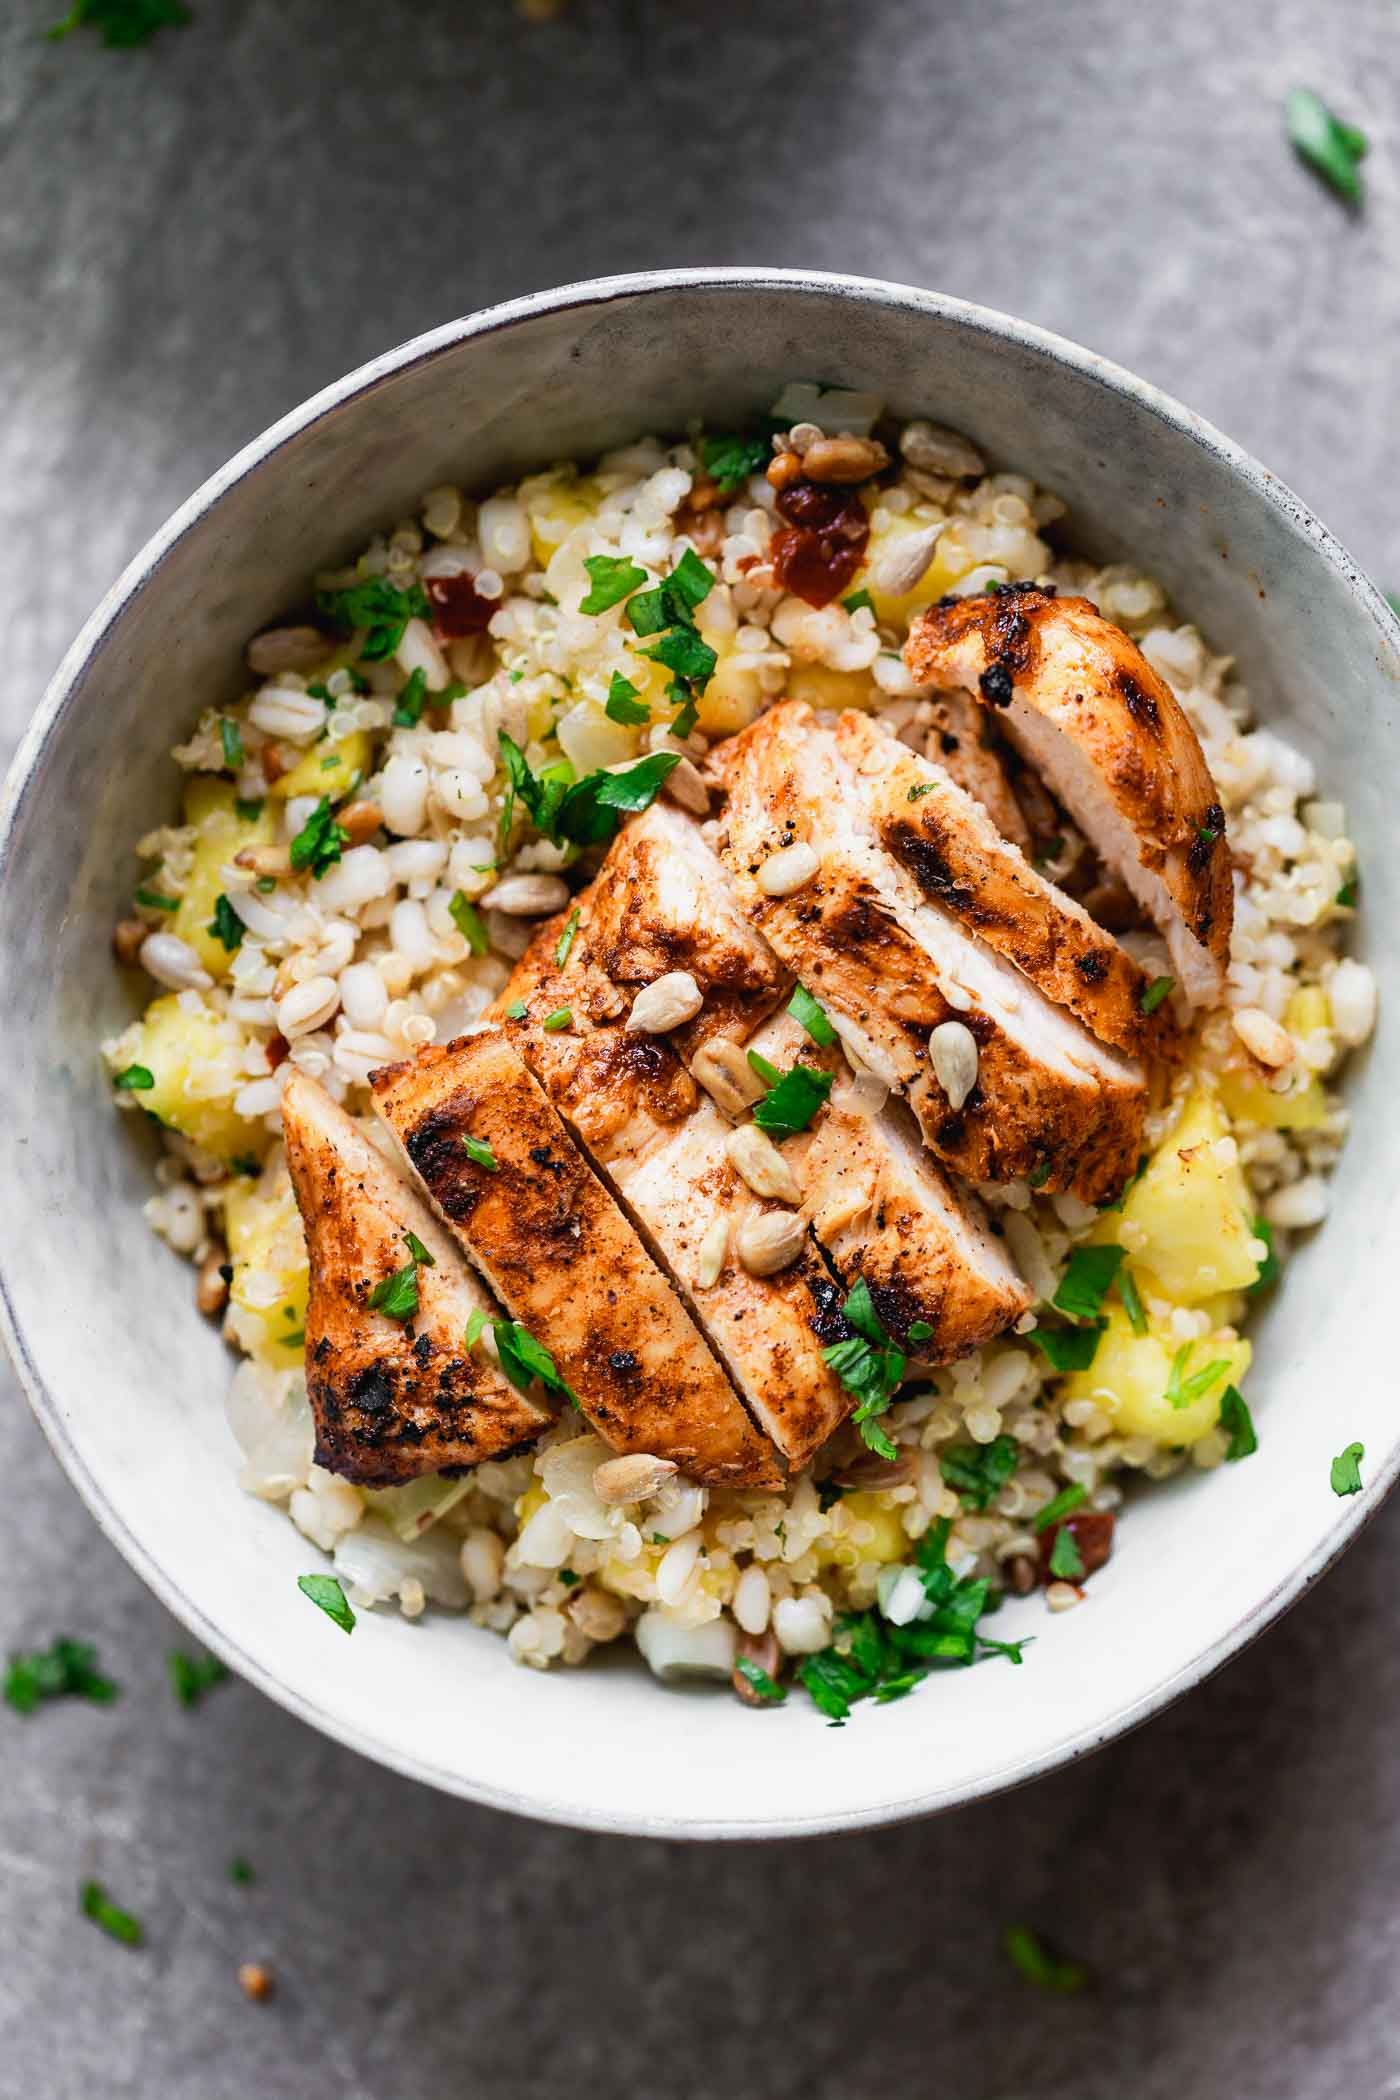 Chipotle Chicken and Pineapple Bowls